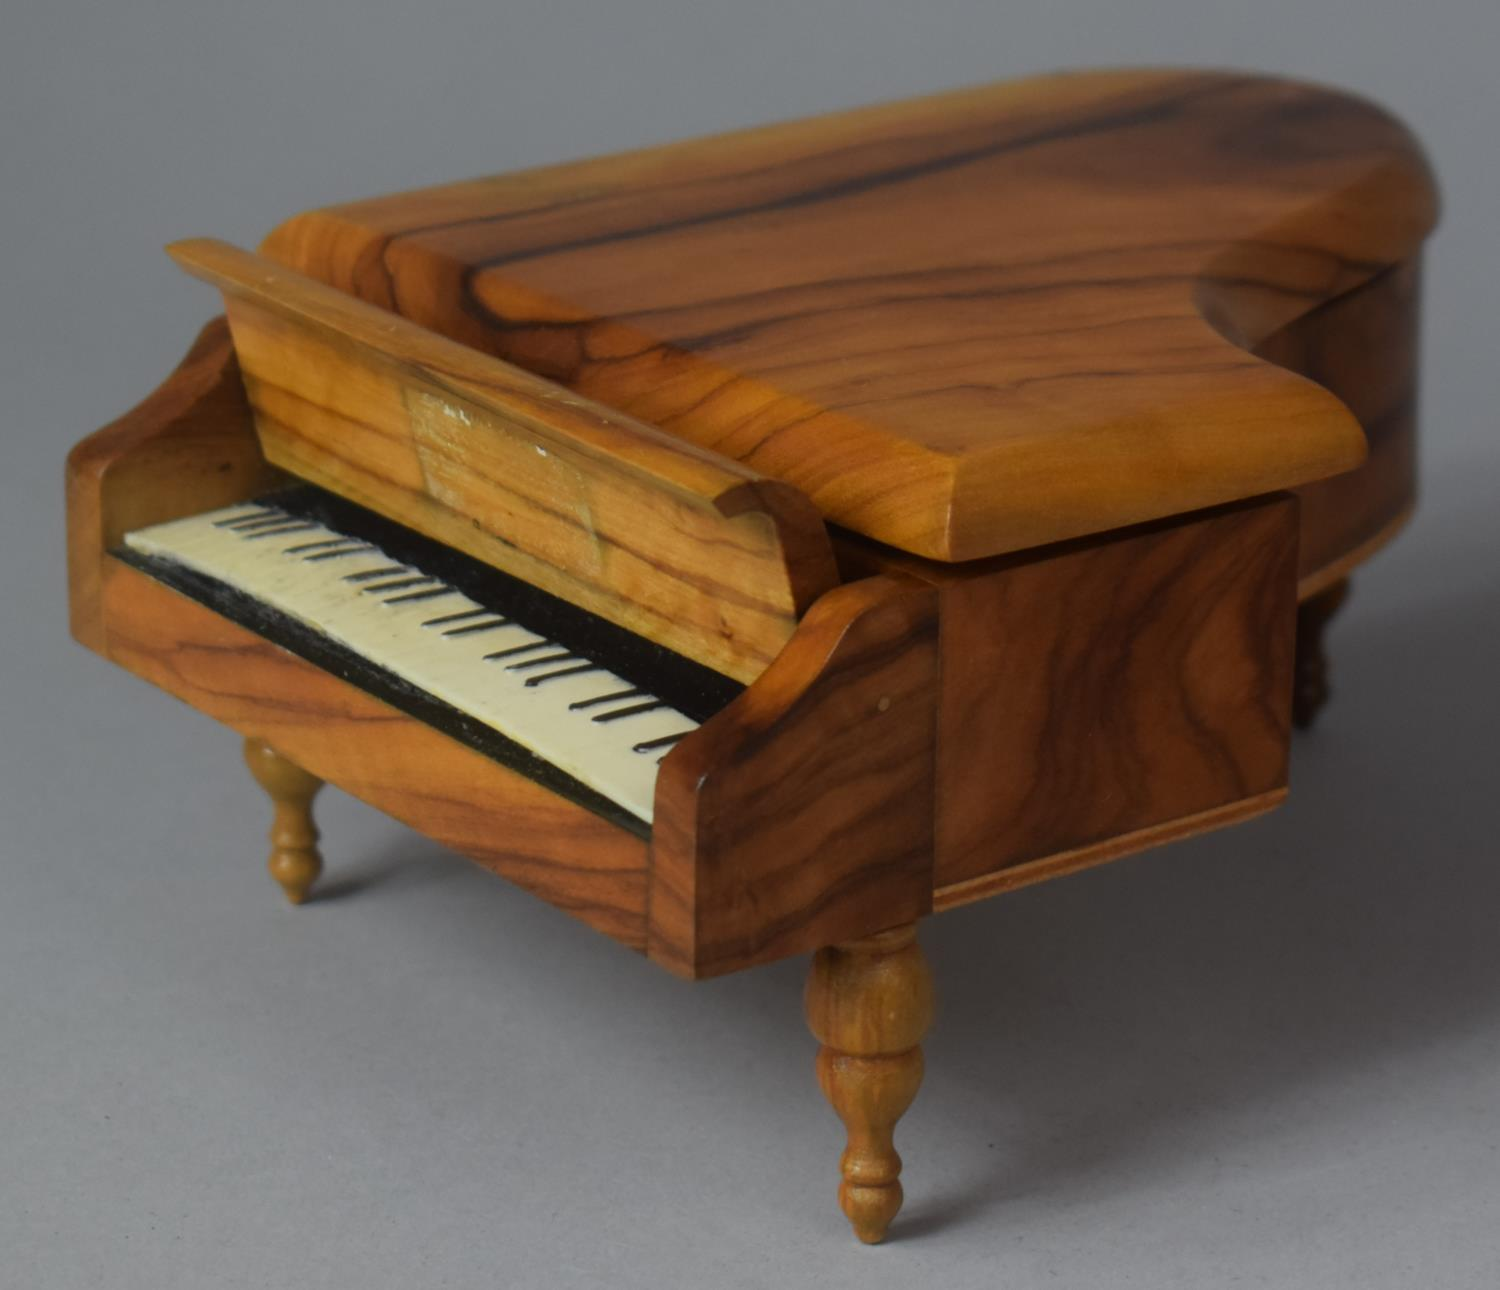 A Novelty Continental Musical Box in the Form of a Grand Piano, Movement Playing Dr. Zhivago, 17cm - Image 3 of 5